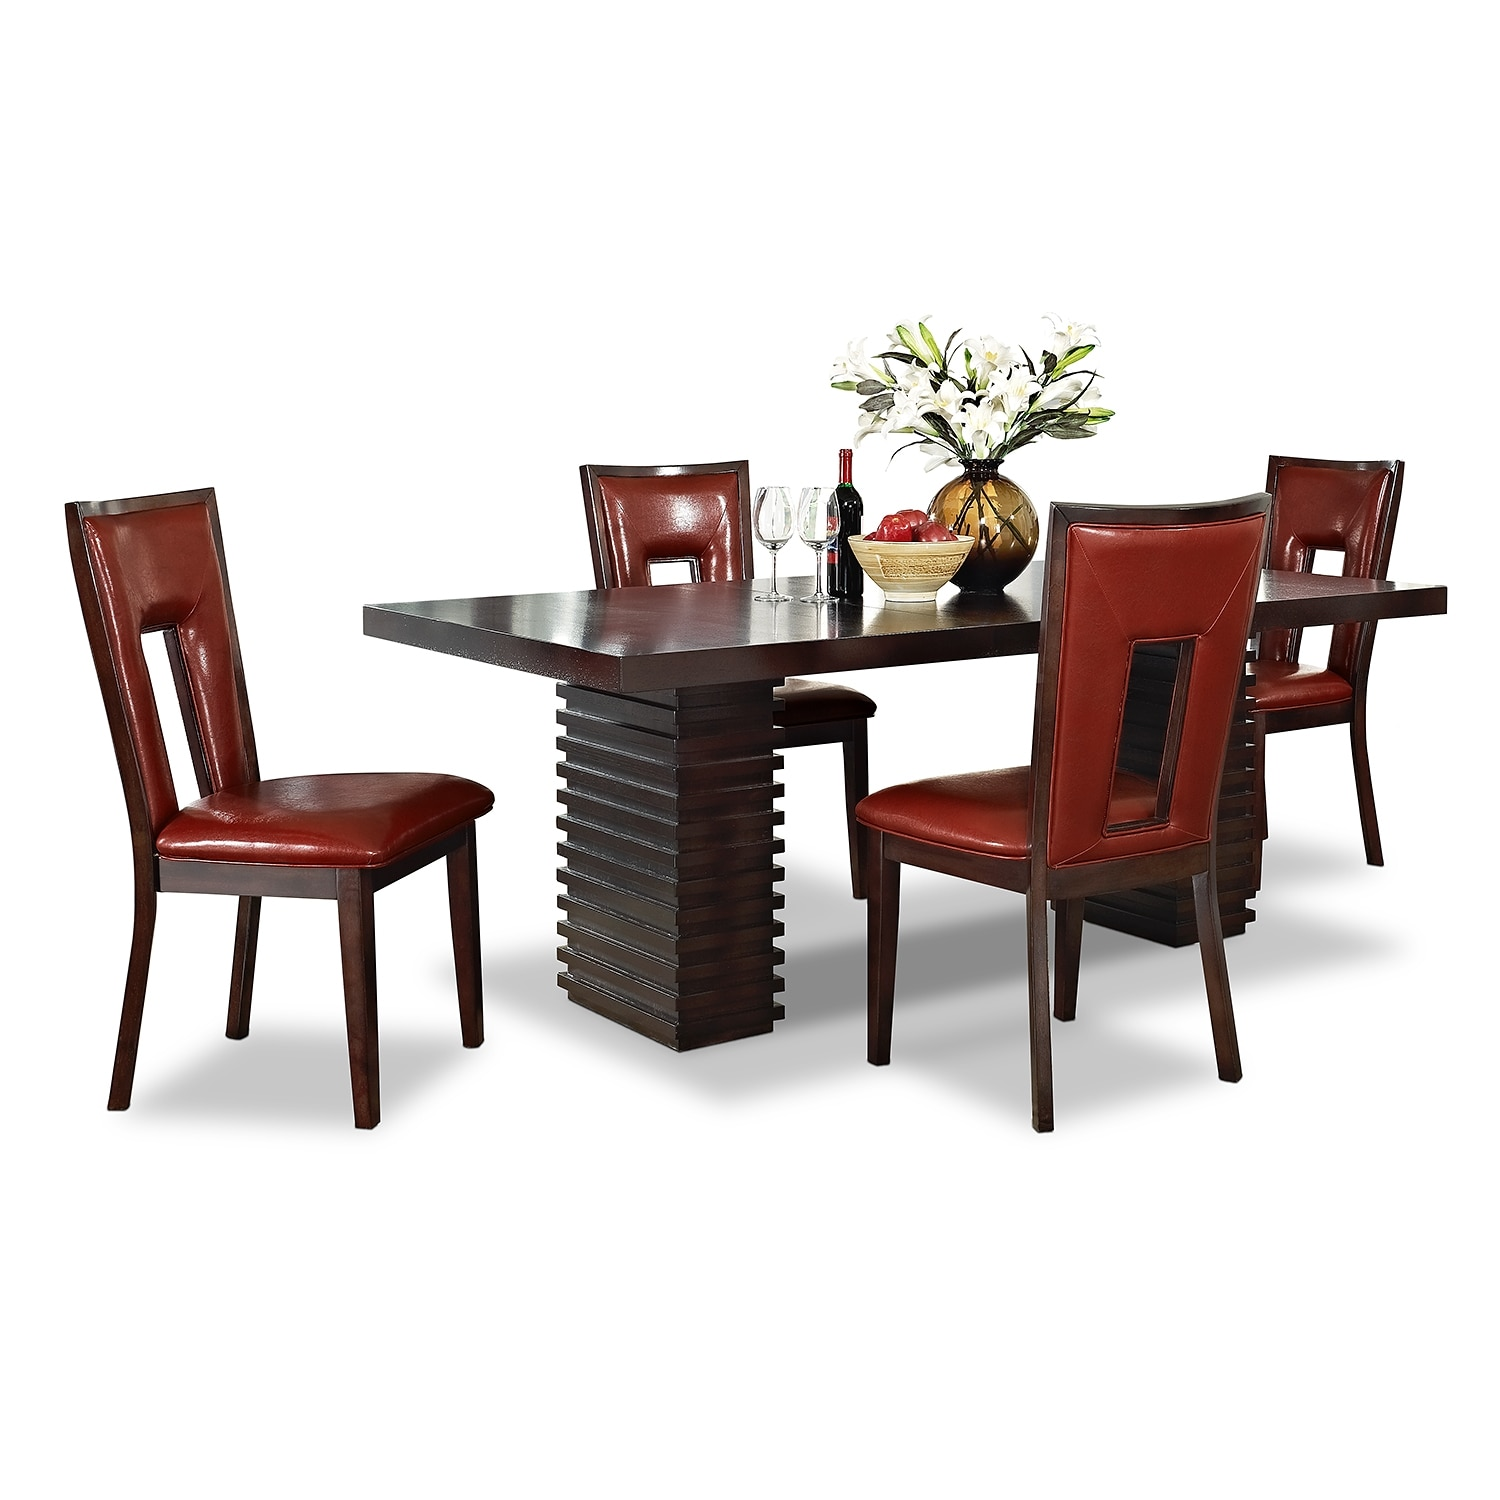 Dining Room Furniture - Paragon Madera 5 Pc. Dinette